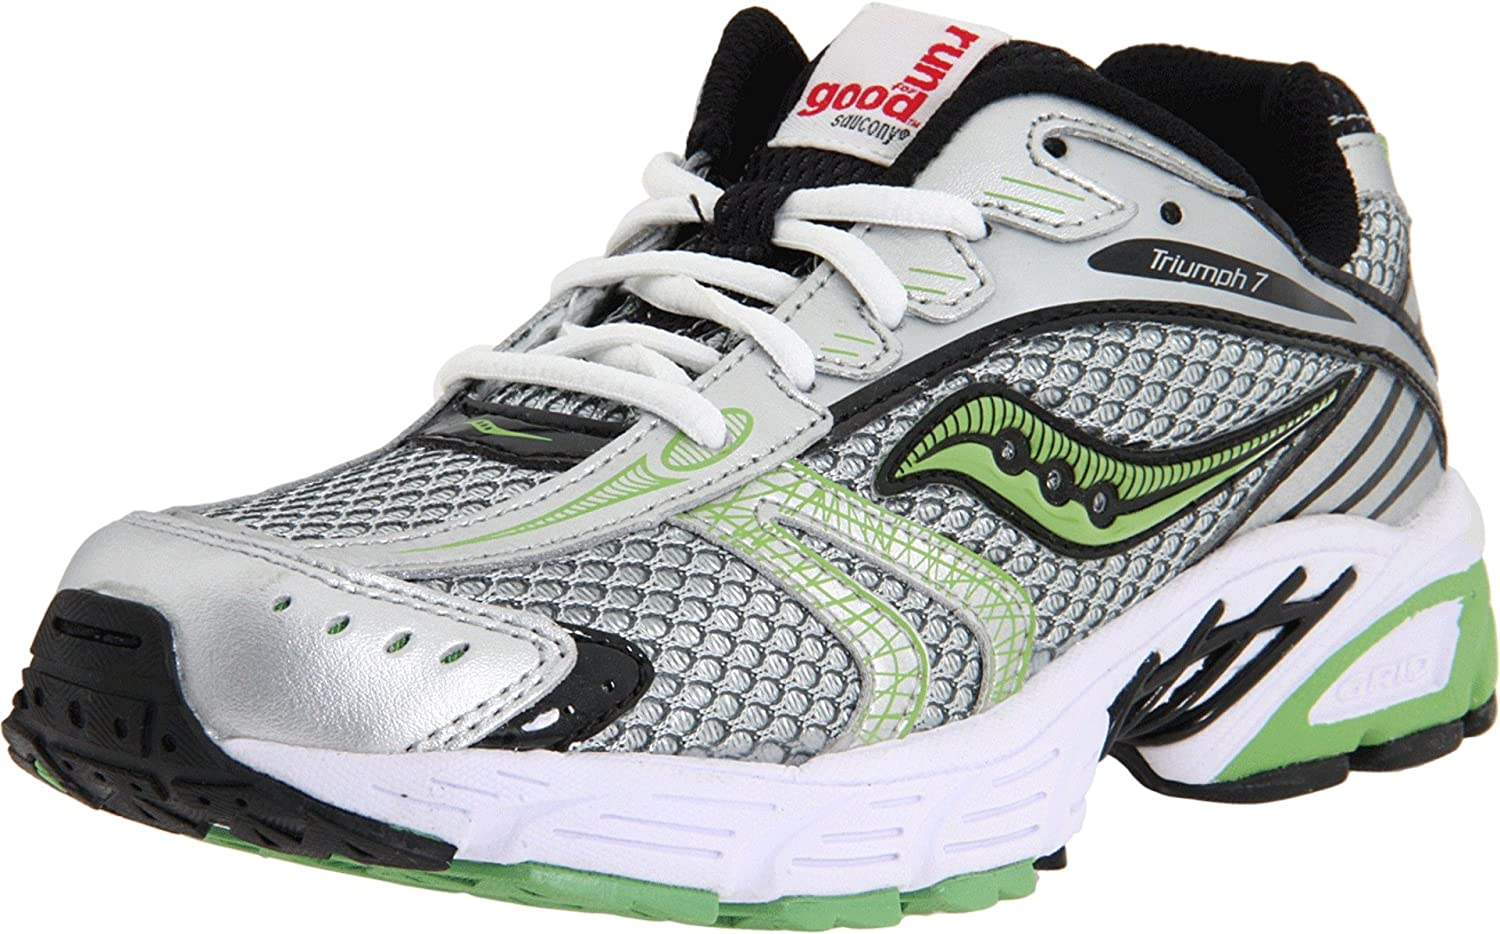 Saucony Triumph Selling 7 Run For Good TM Big Running Kid Shoe K Little Max 43% OFF